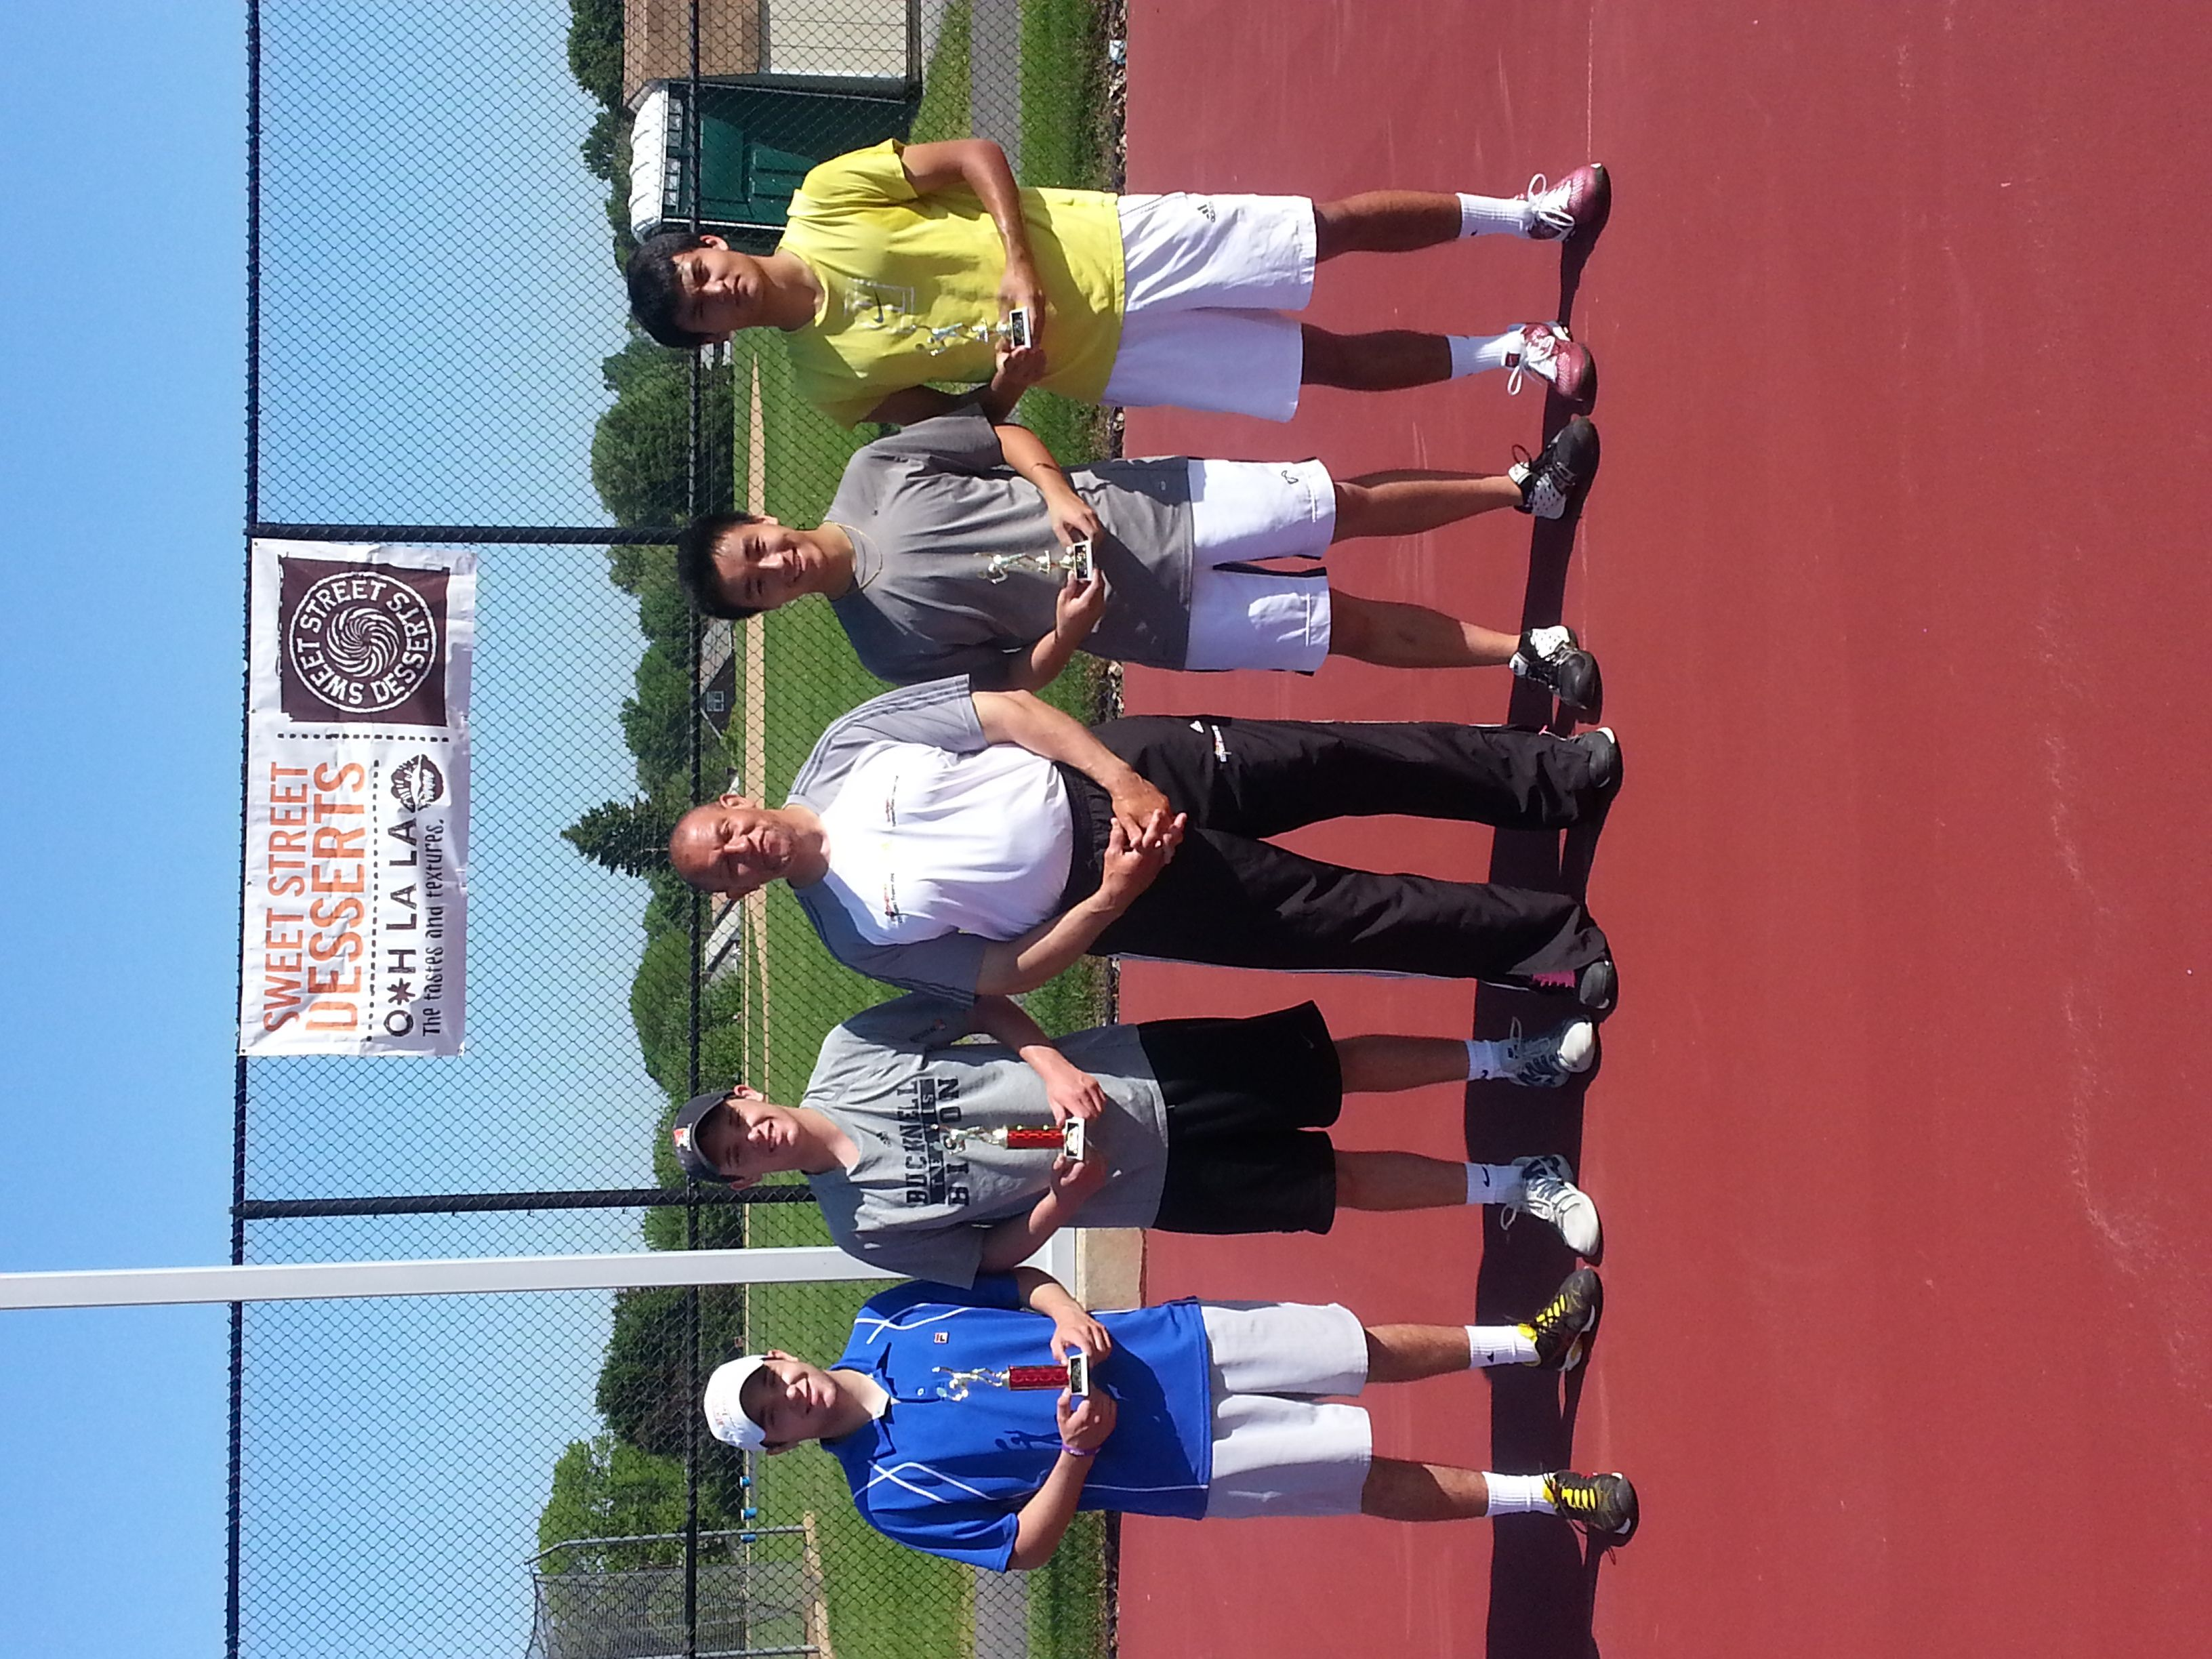 Muhlenberg Level 5 Tennis Tournament Doubles Lieb Brothers Champions and Runner-up